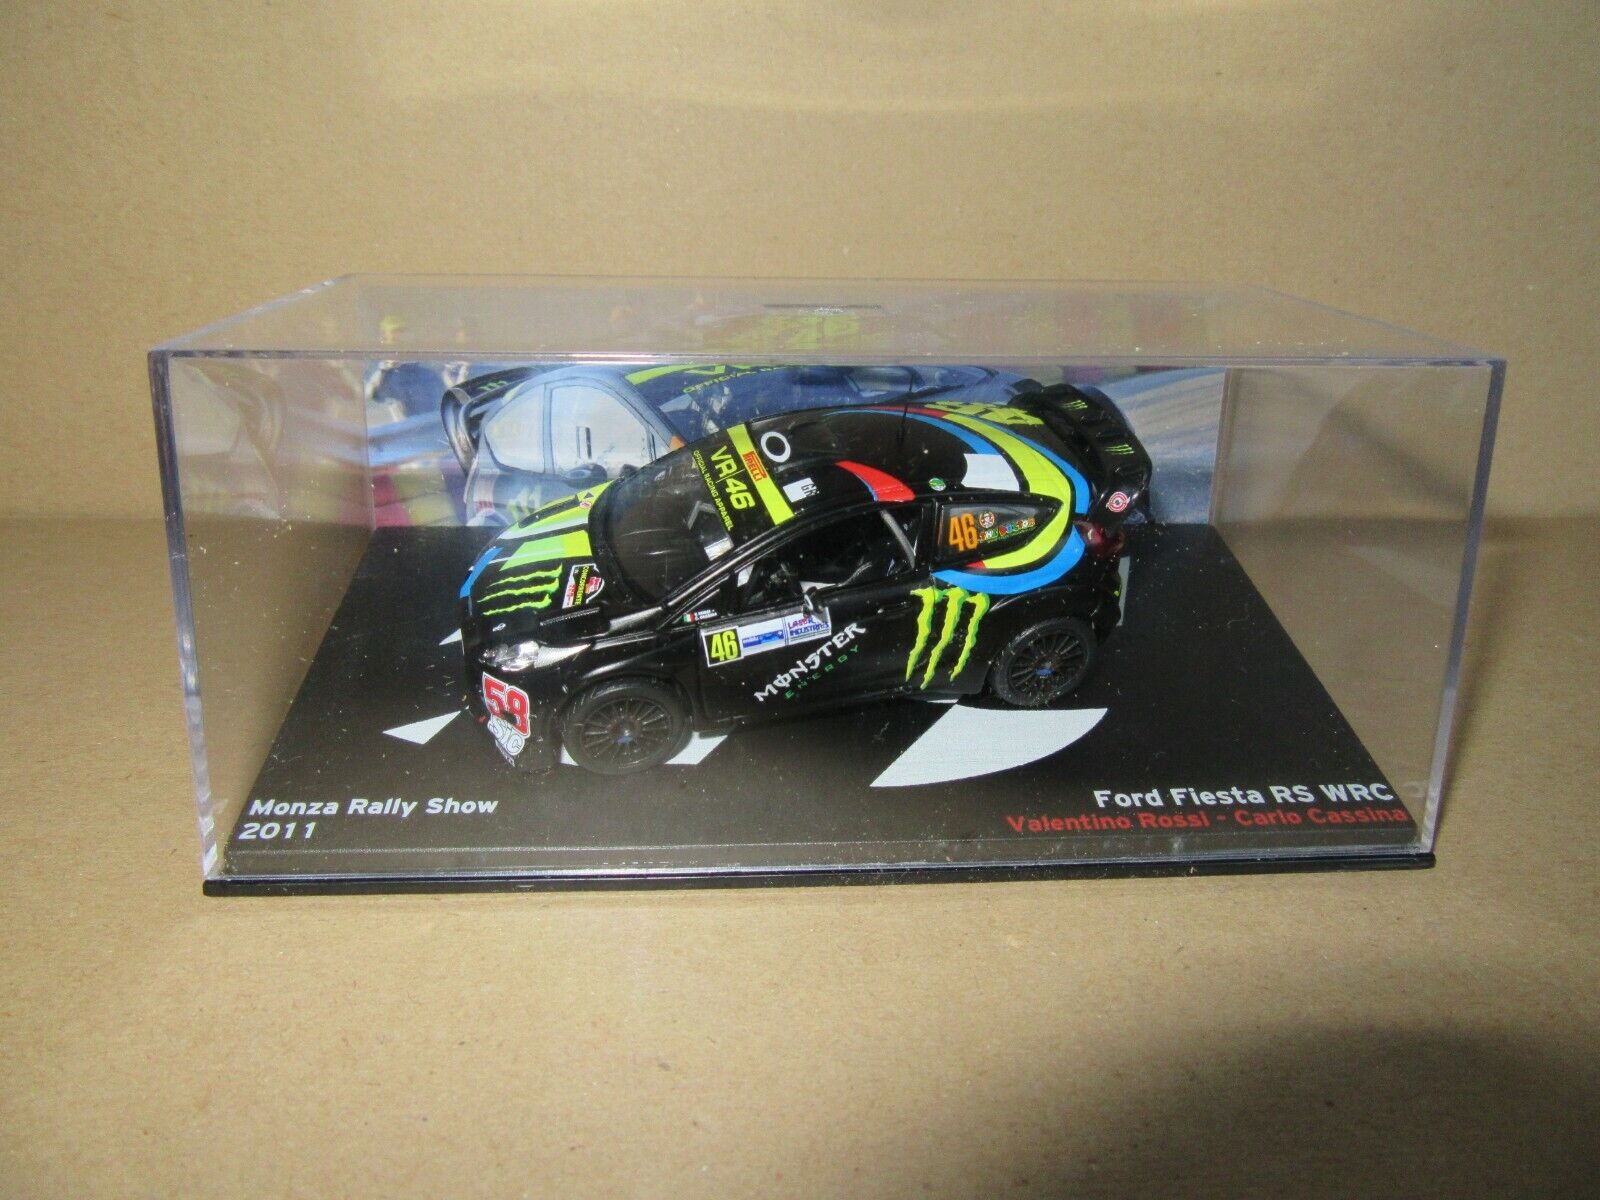 435K Ixo Ford Fiesta Rs WRC Monza Rally Show 2011 Valentino Rossi  46 1 43